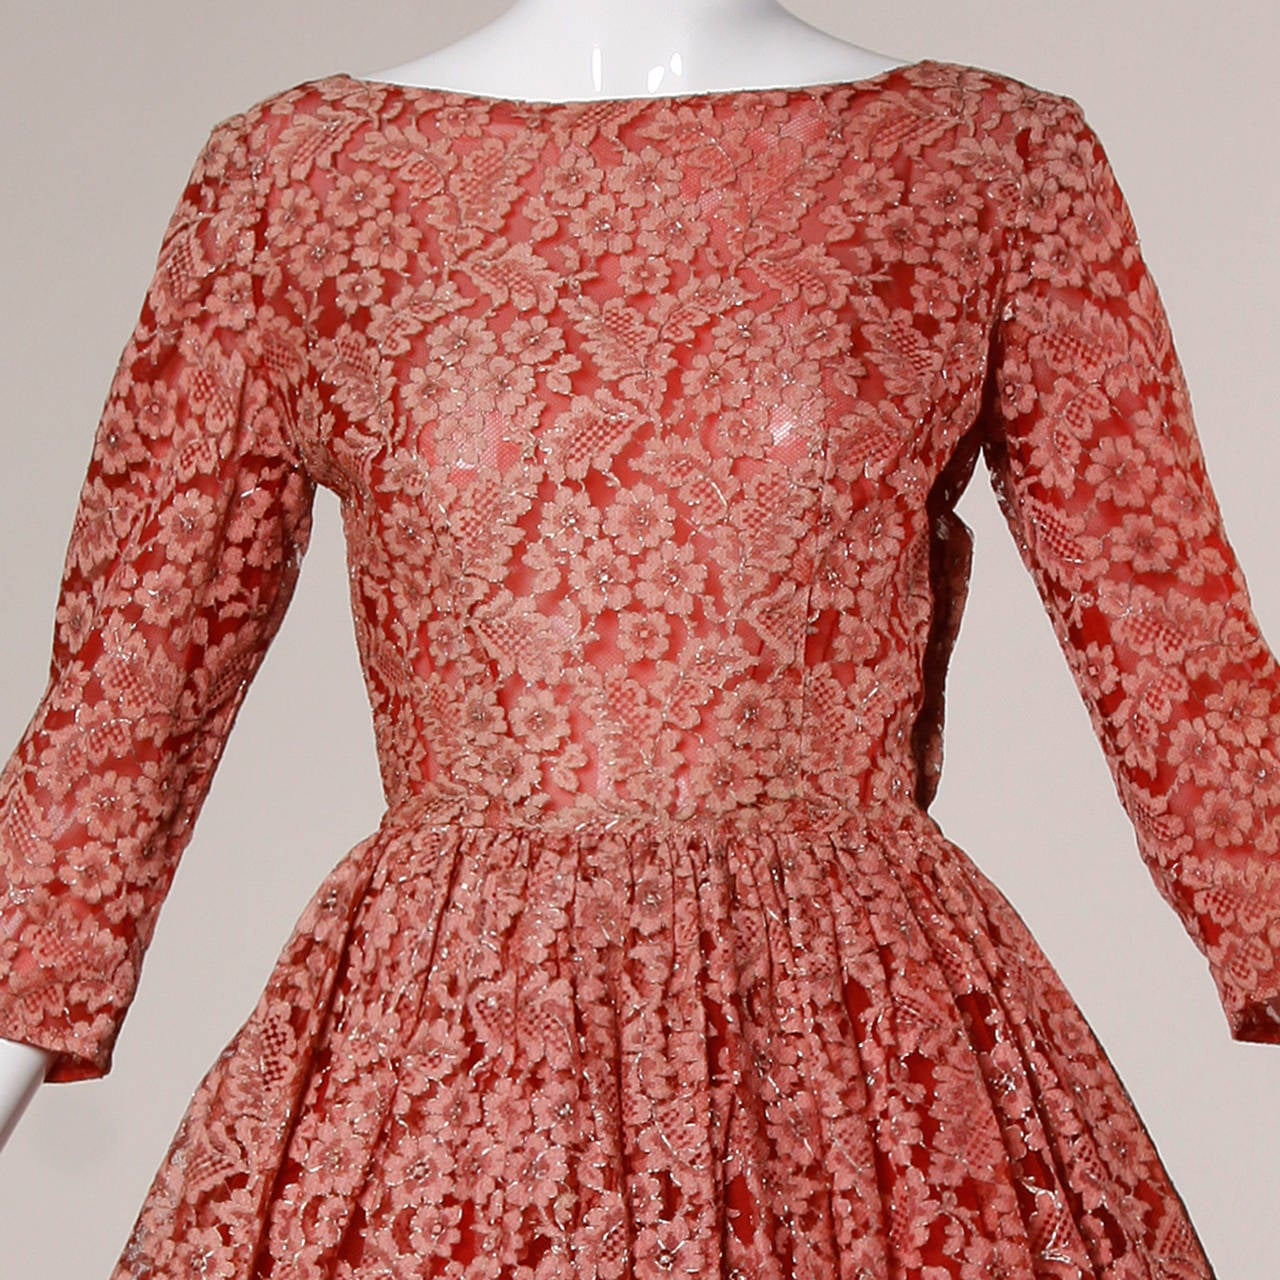 1950s Vintage Red Lace Cocktail Dress with Belt 9